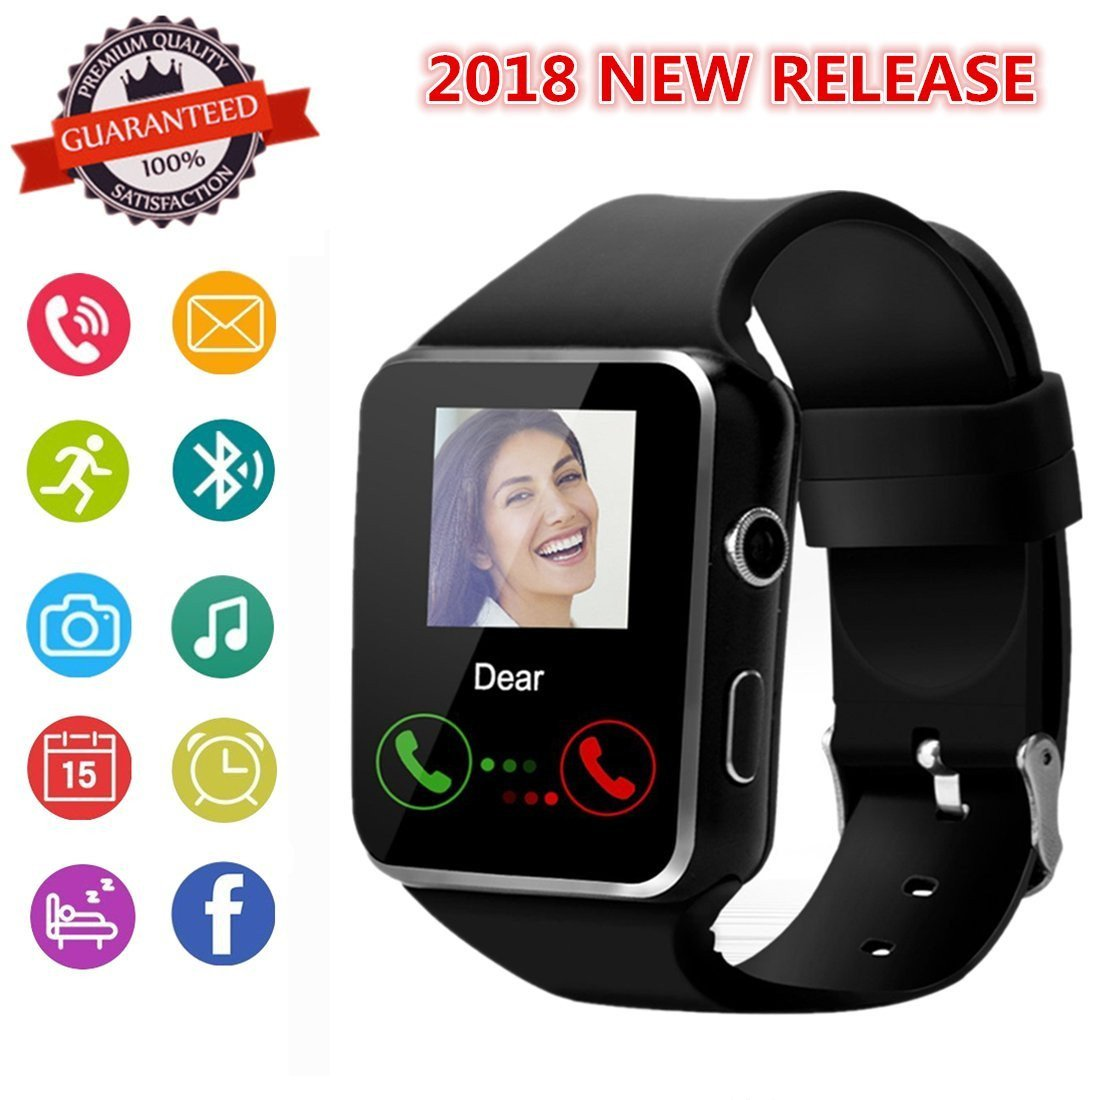 Smartwatch, Bluetooth Smart Watch Phone with SIM Card Slot Pedometer Camera Notification Sync Compatible with Android and iPhone (App Unavailable) for Men Women Kids (Black)